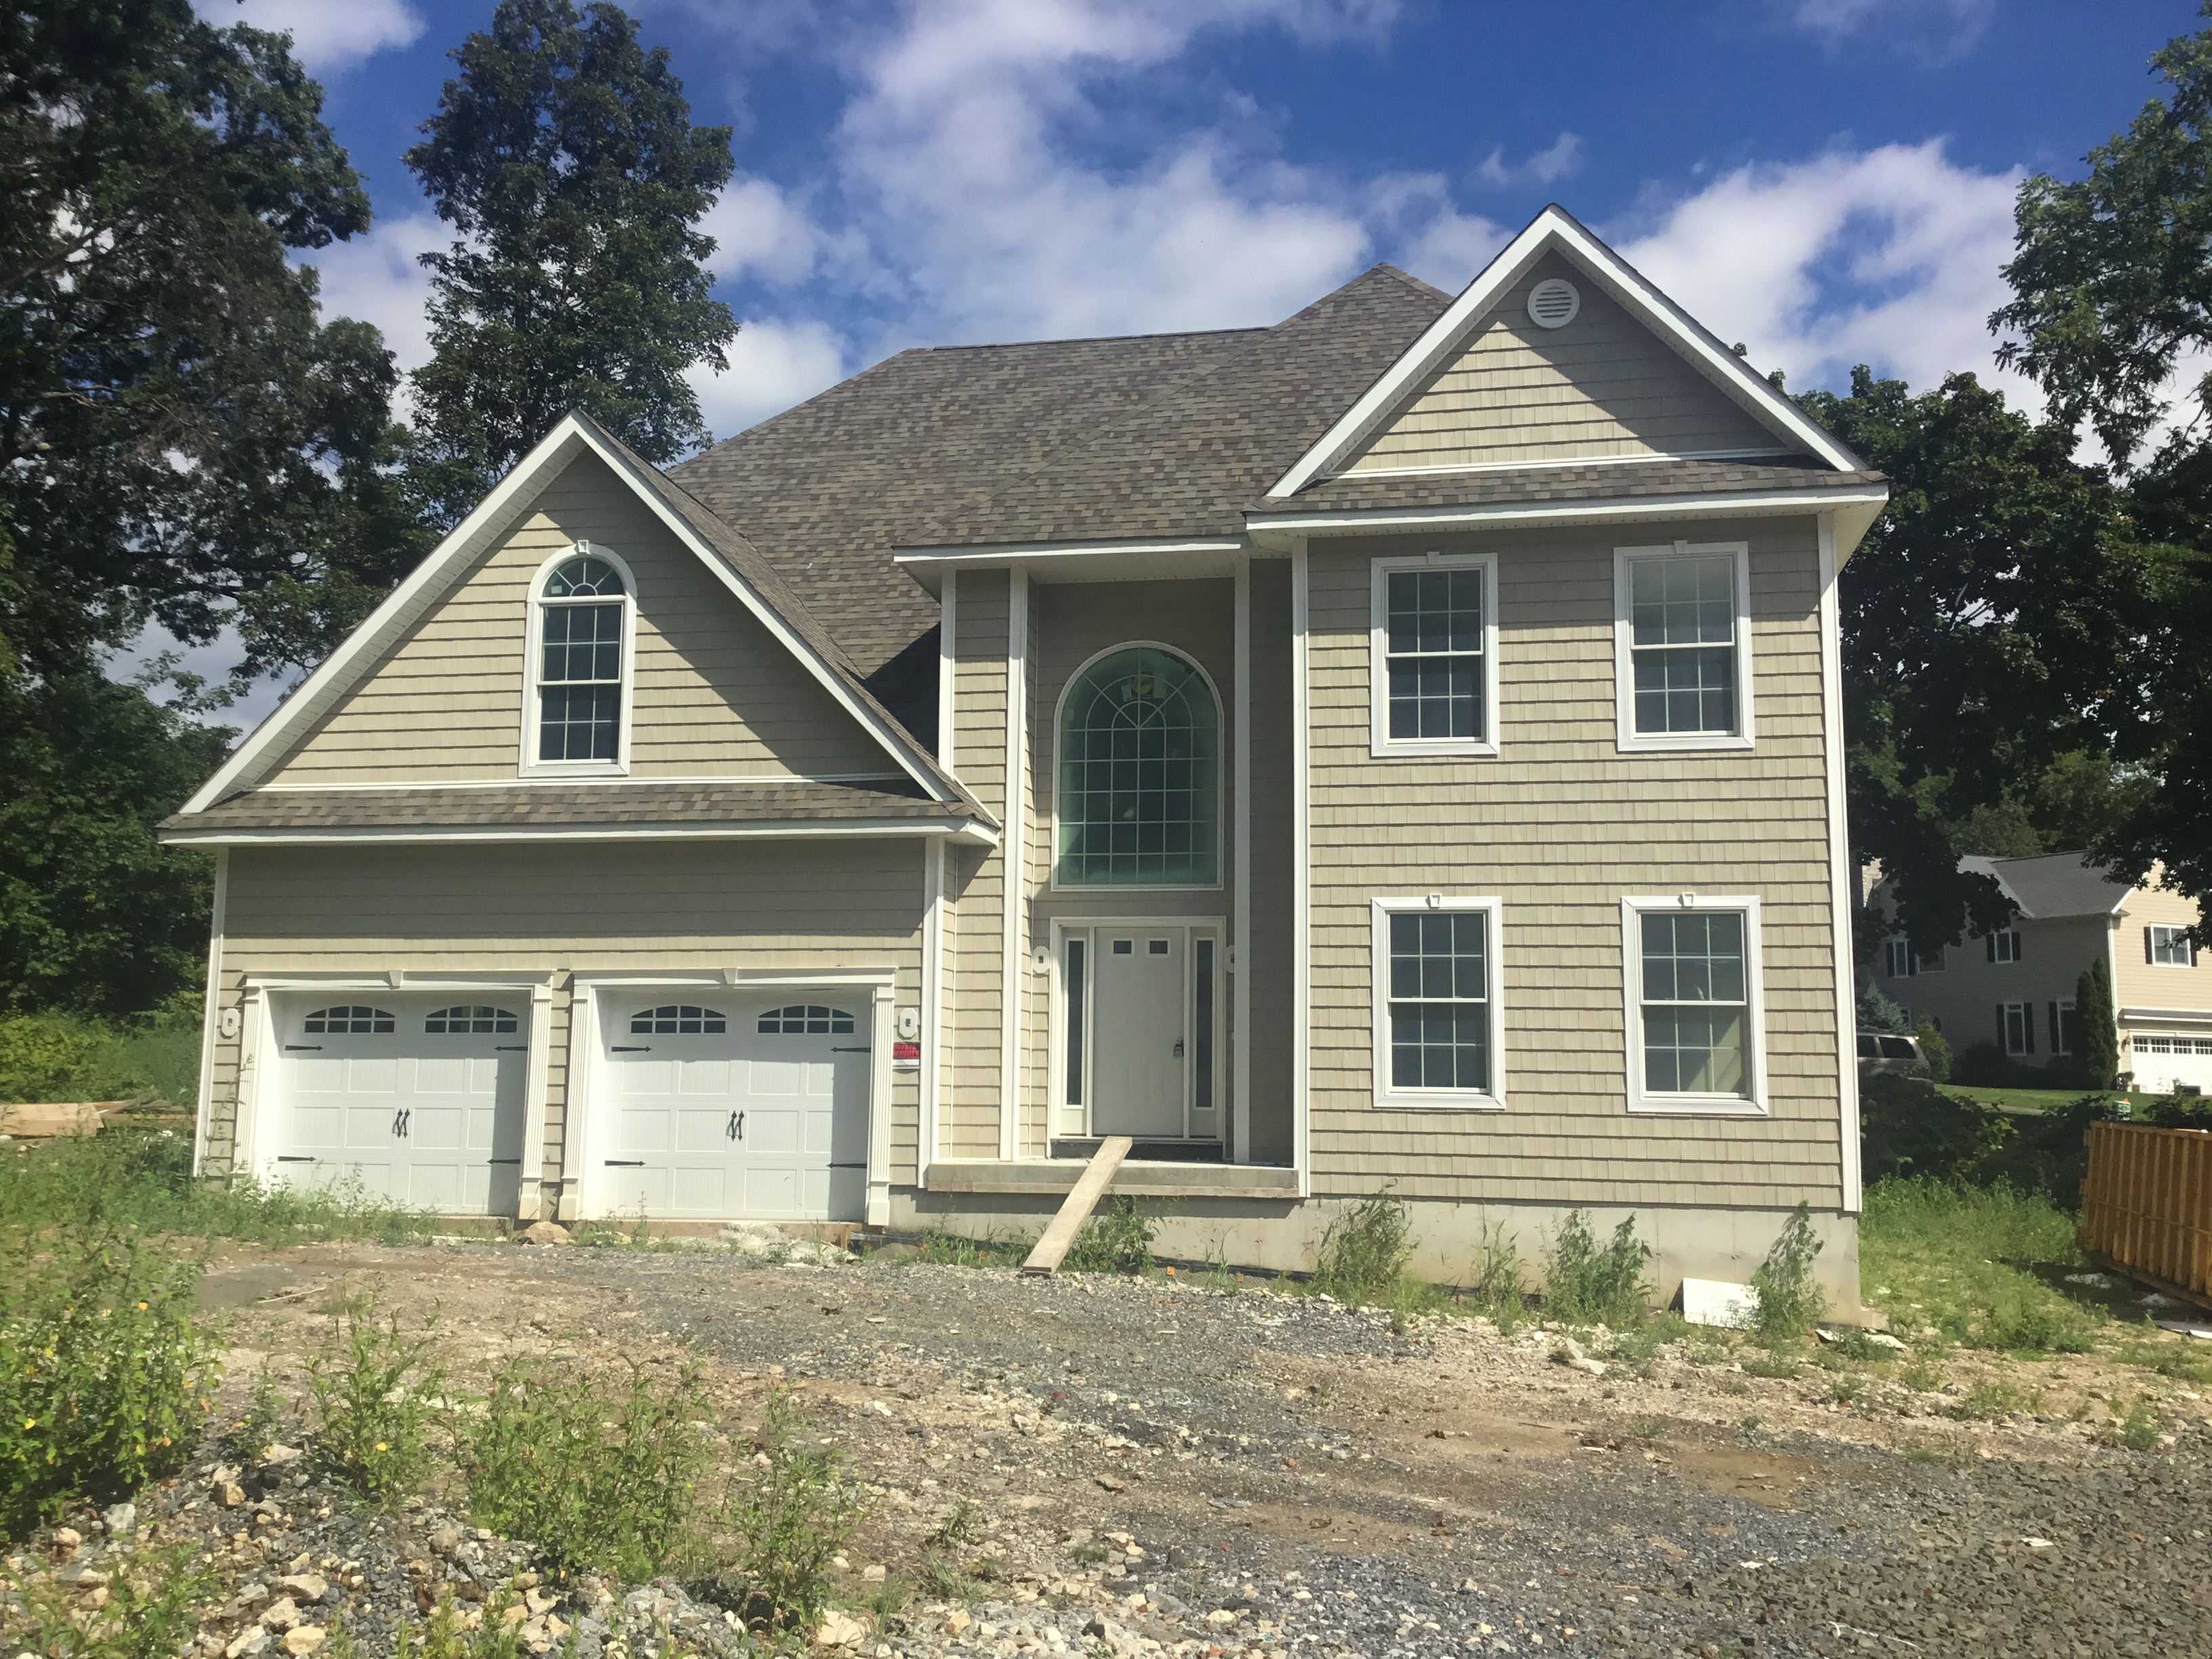 Single Family Home for Sale at New Construction Lot 4 Walnut Ridge Court Stamford, Connecticut, 06904 United States